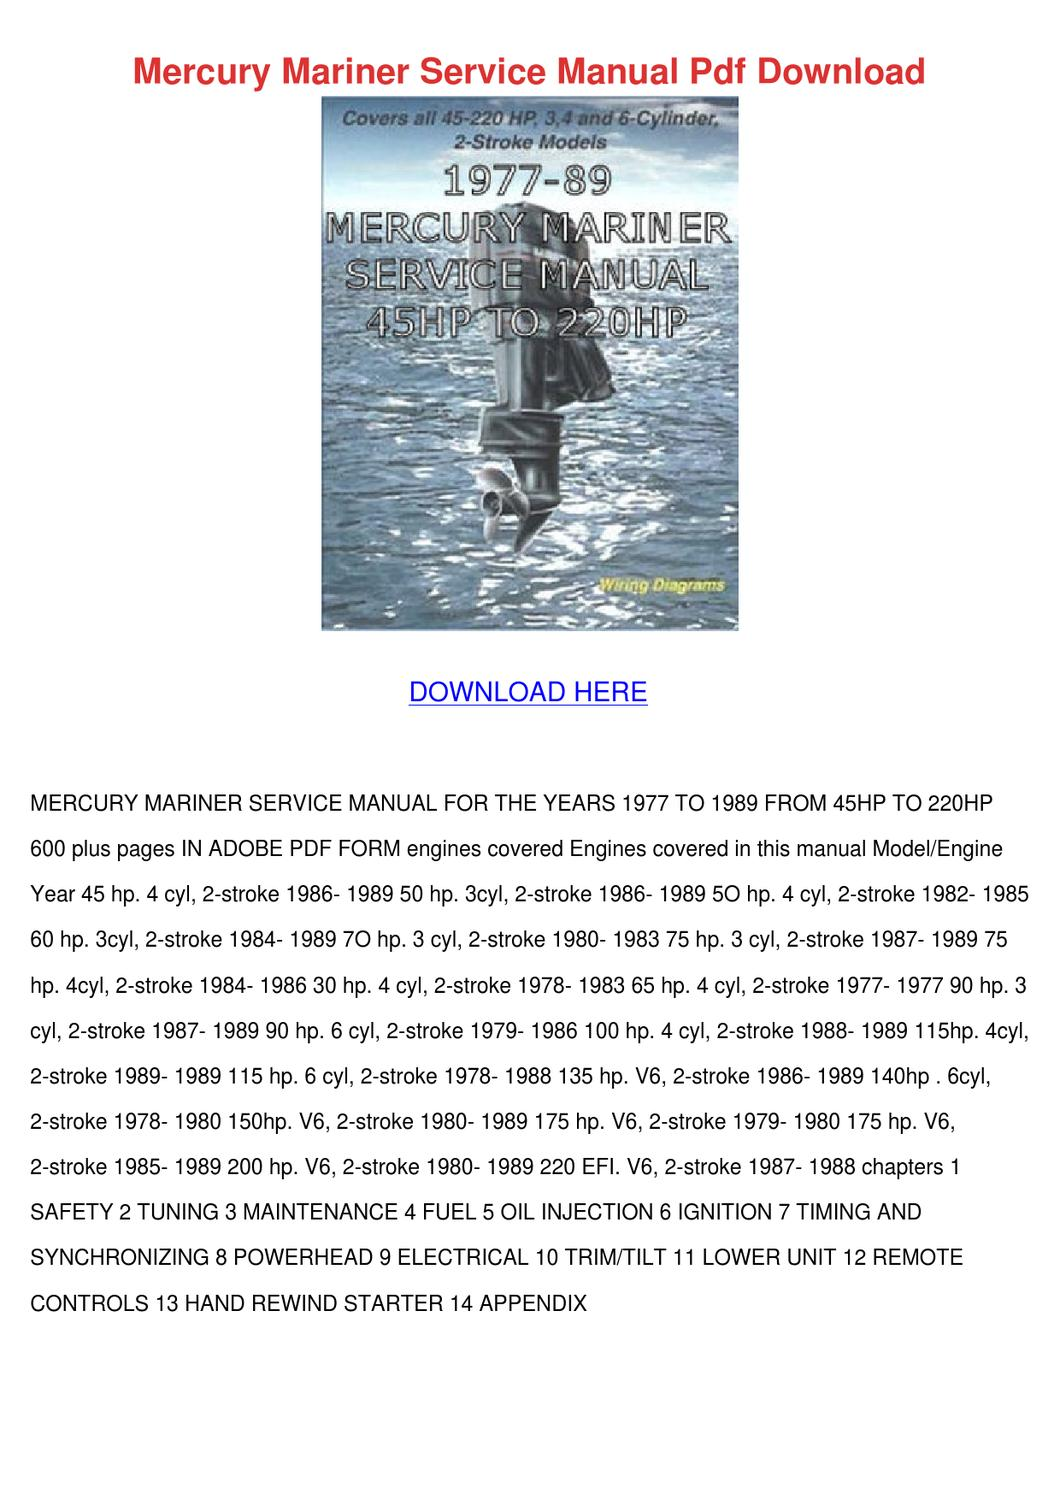 Mercury Mariner Service Manual Pdf Download by Svetlana Sovereign - issuu